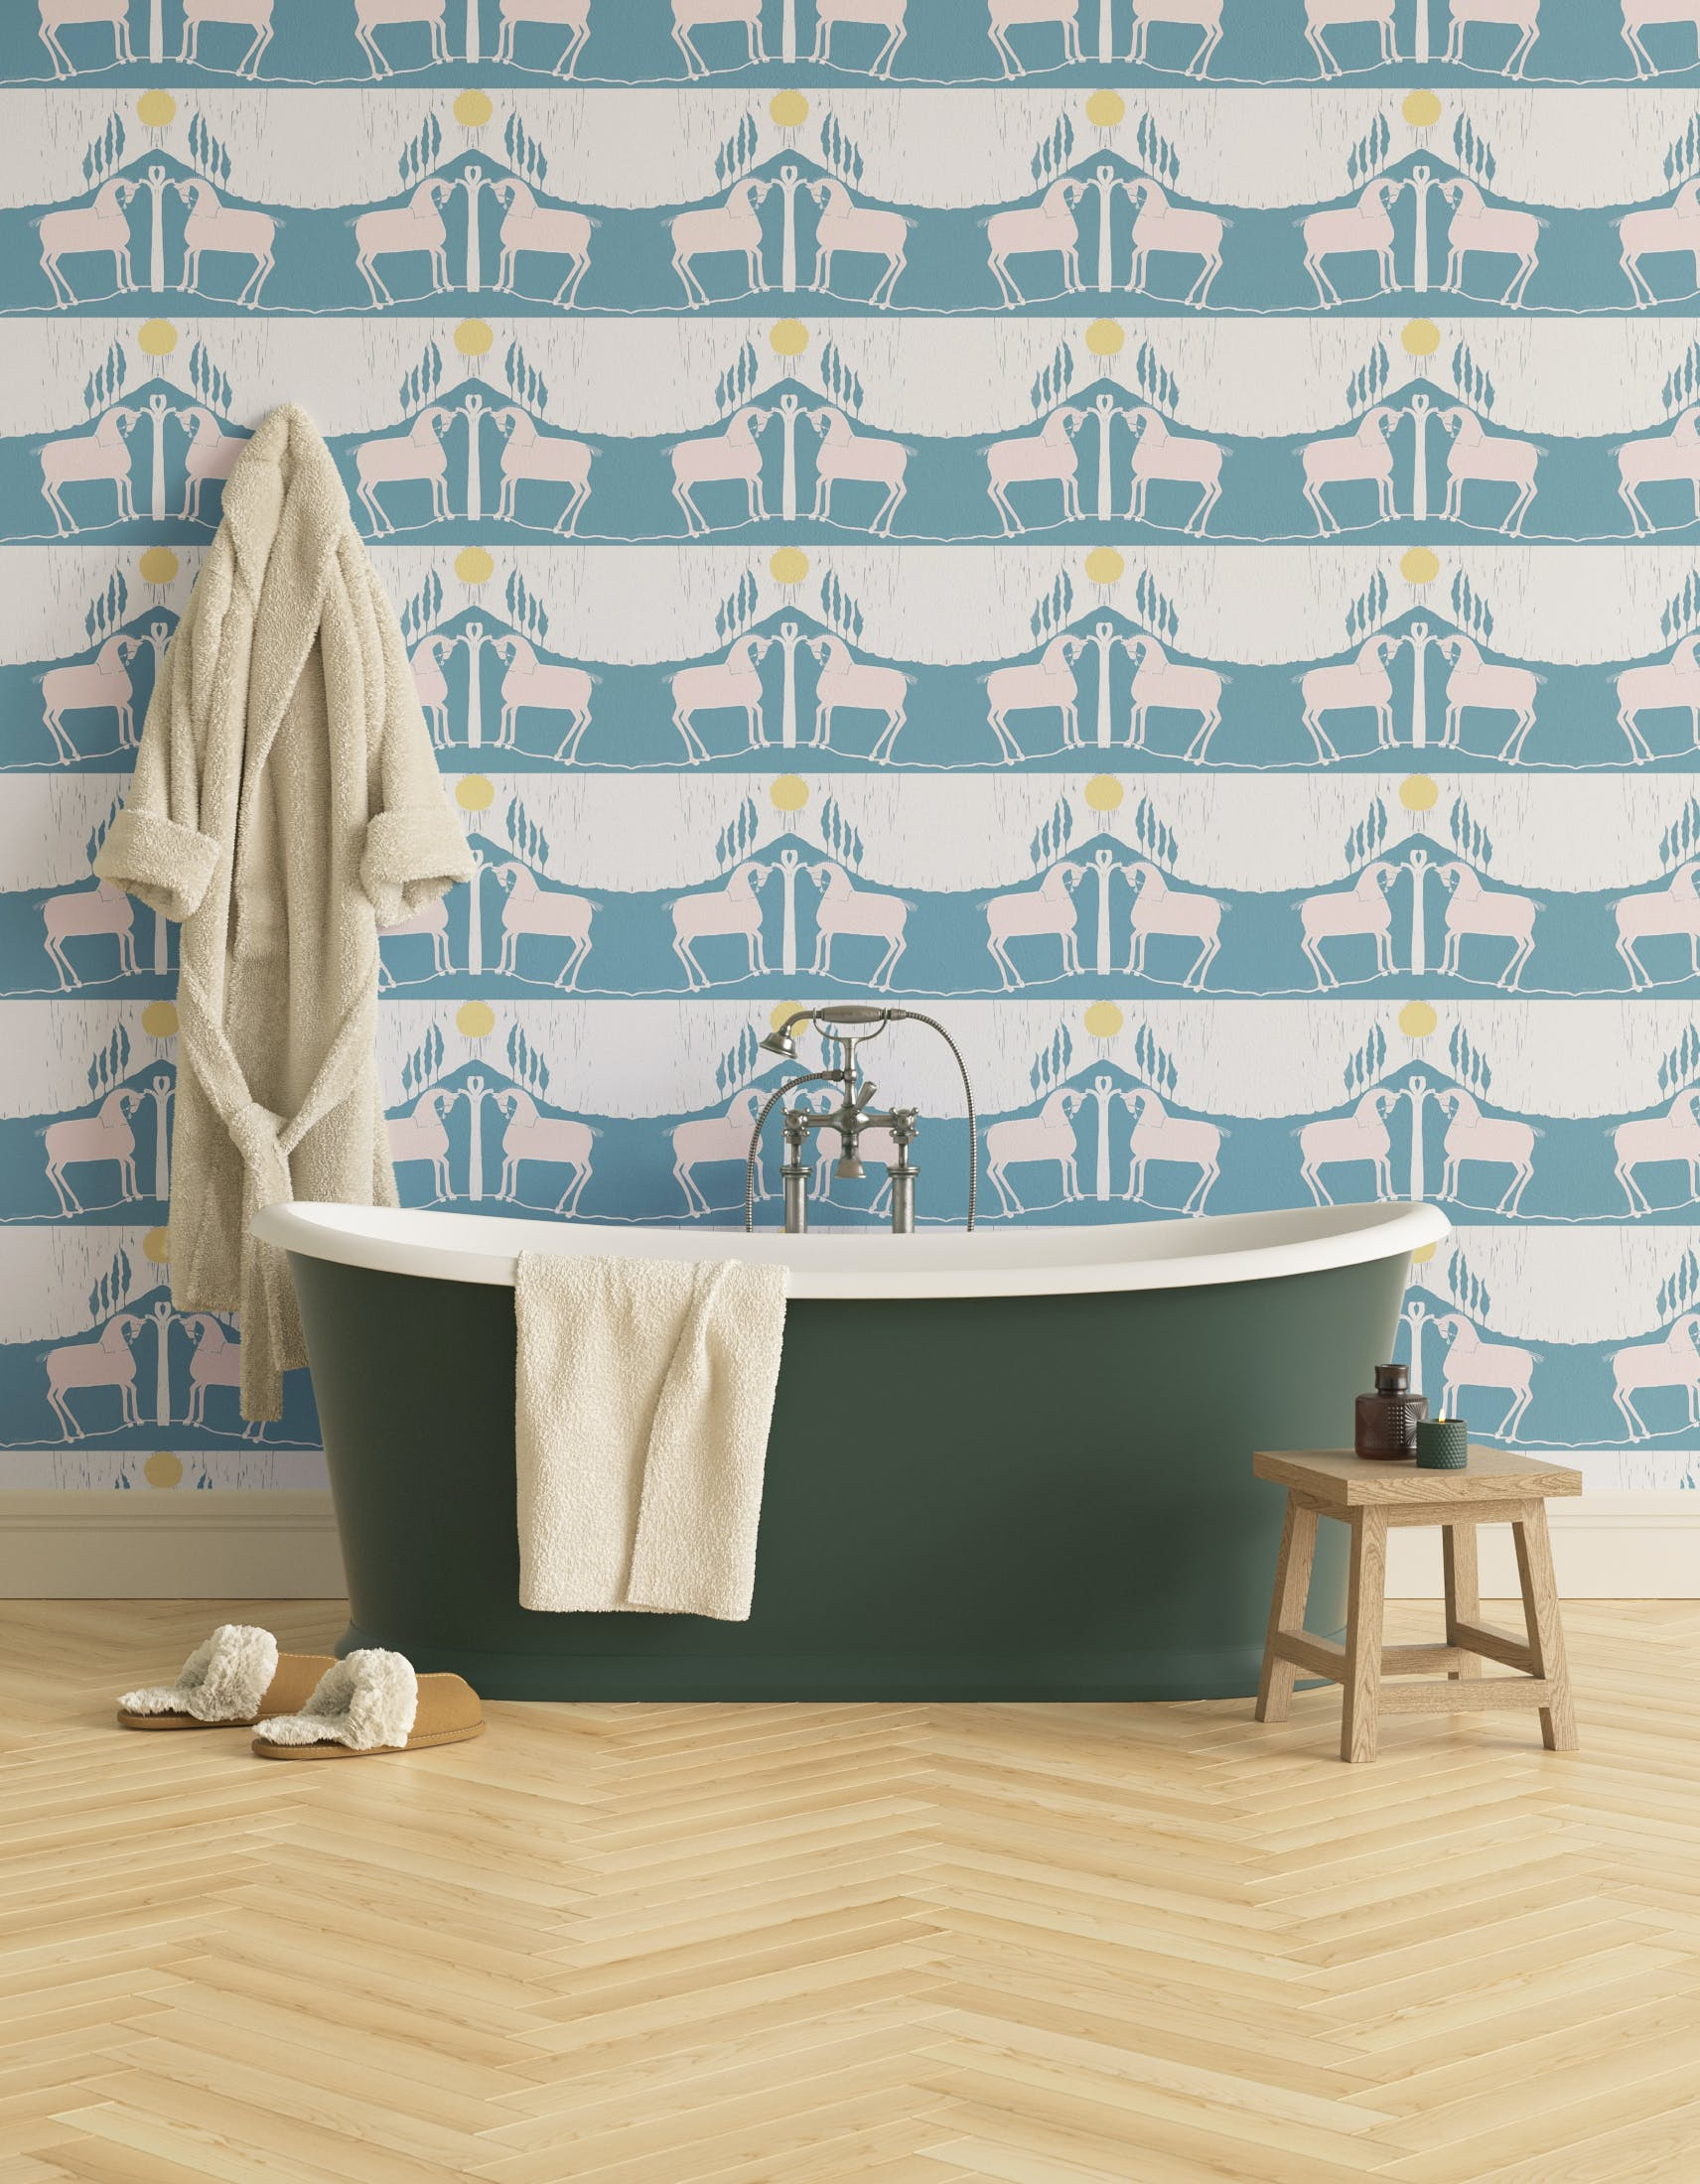 Bathroom decorated with Lick x Annika Reed Western 01 teal and yellow animal wallpaper